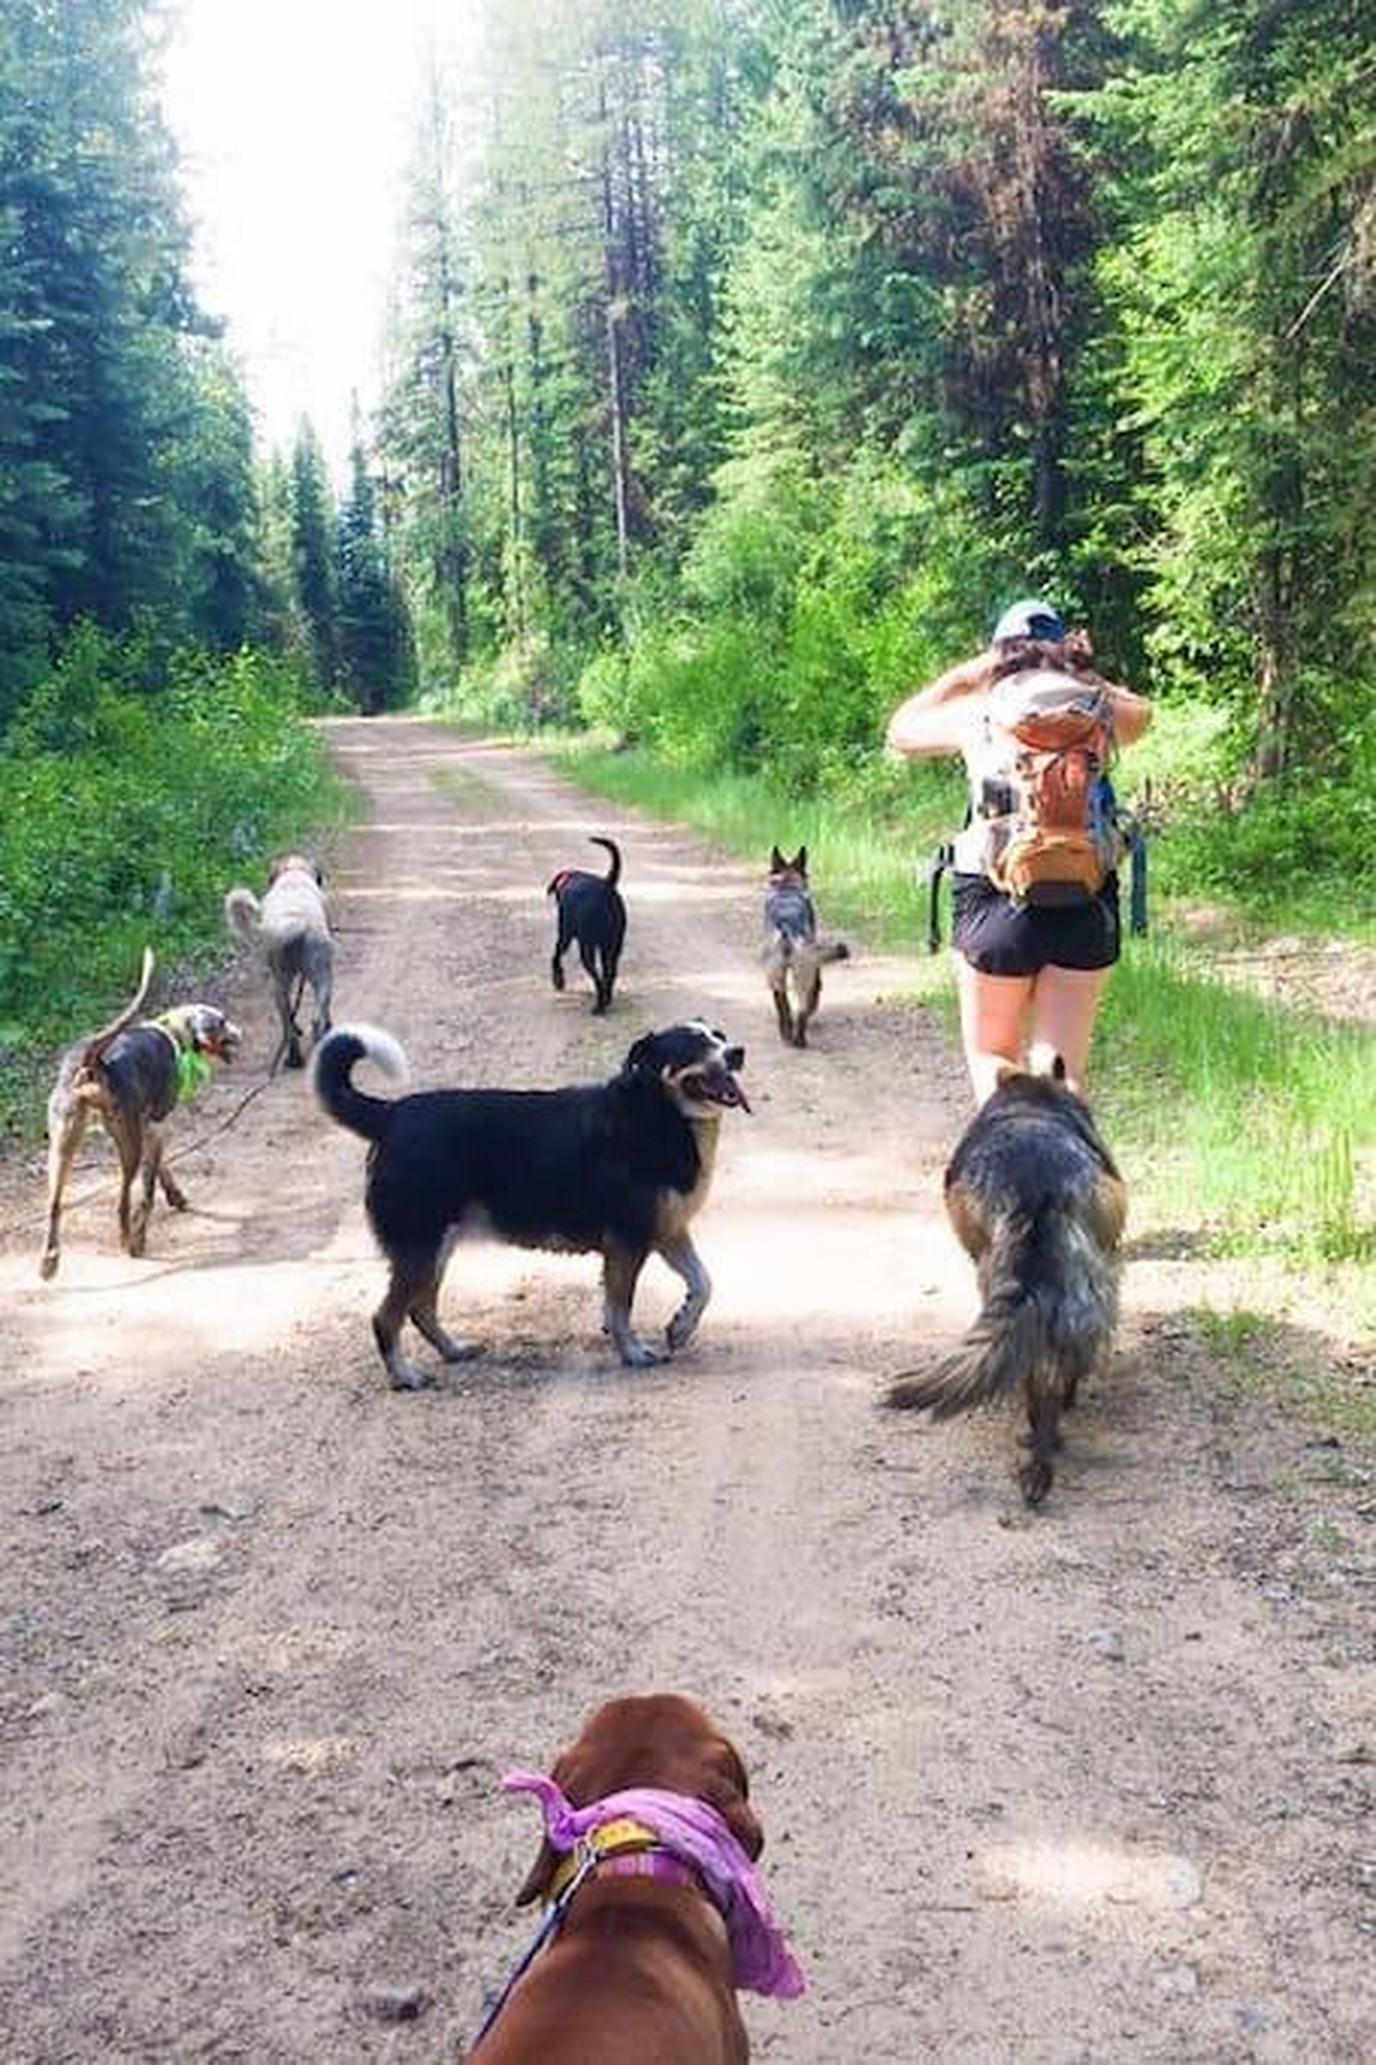 A Woman Hikes With a Group of Large Dogs on a Pet-Friendly Trail in Oyster Bay.